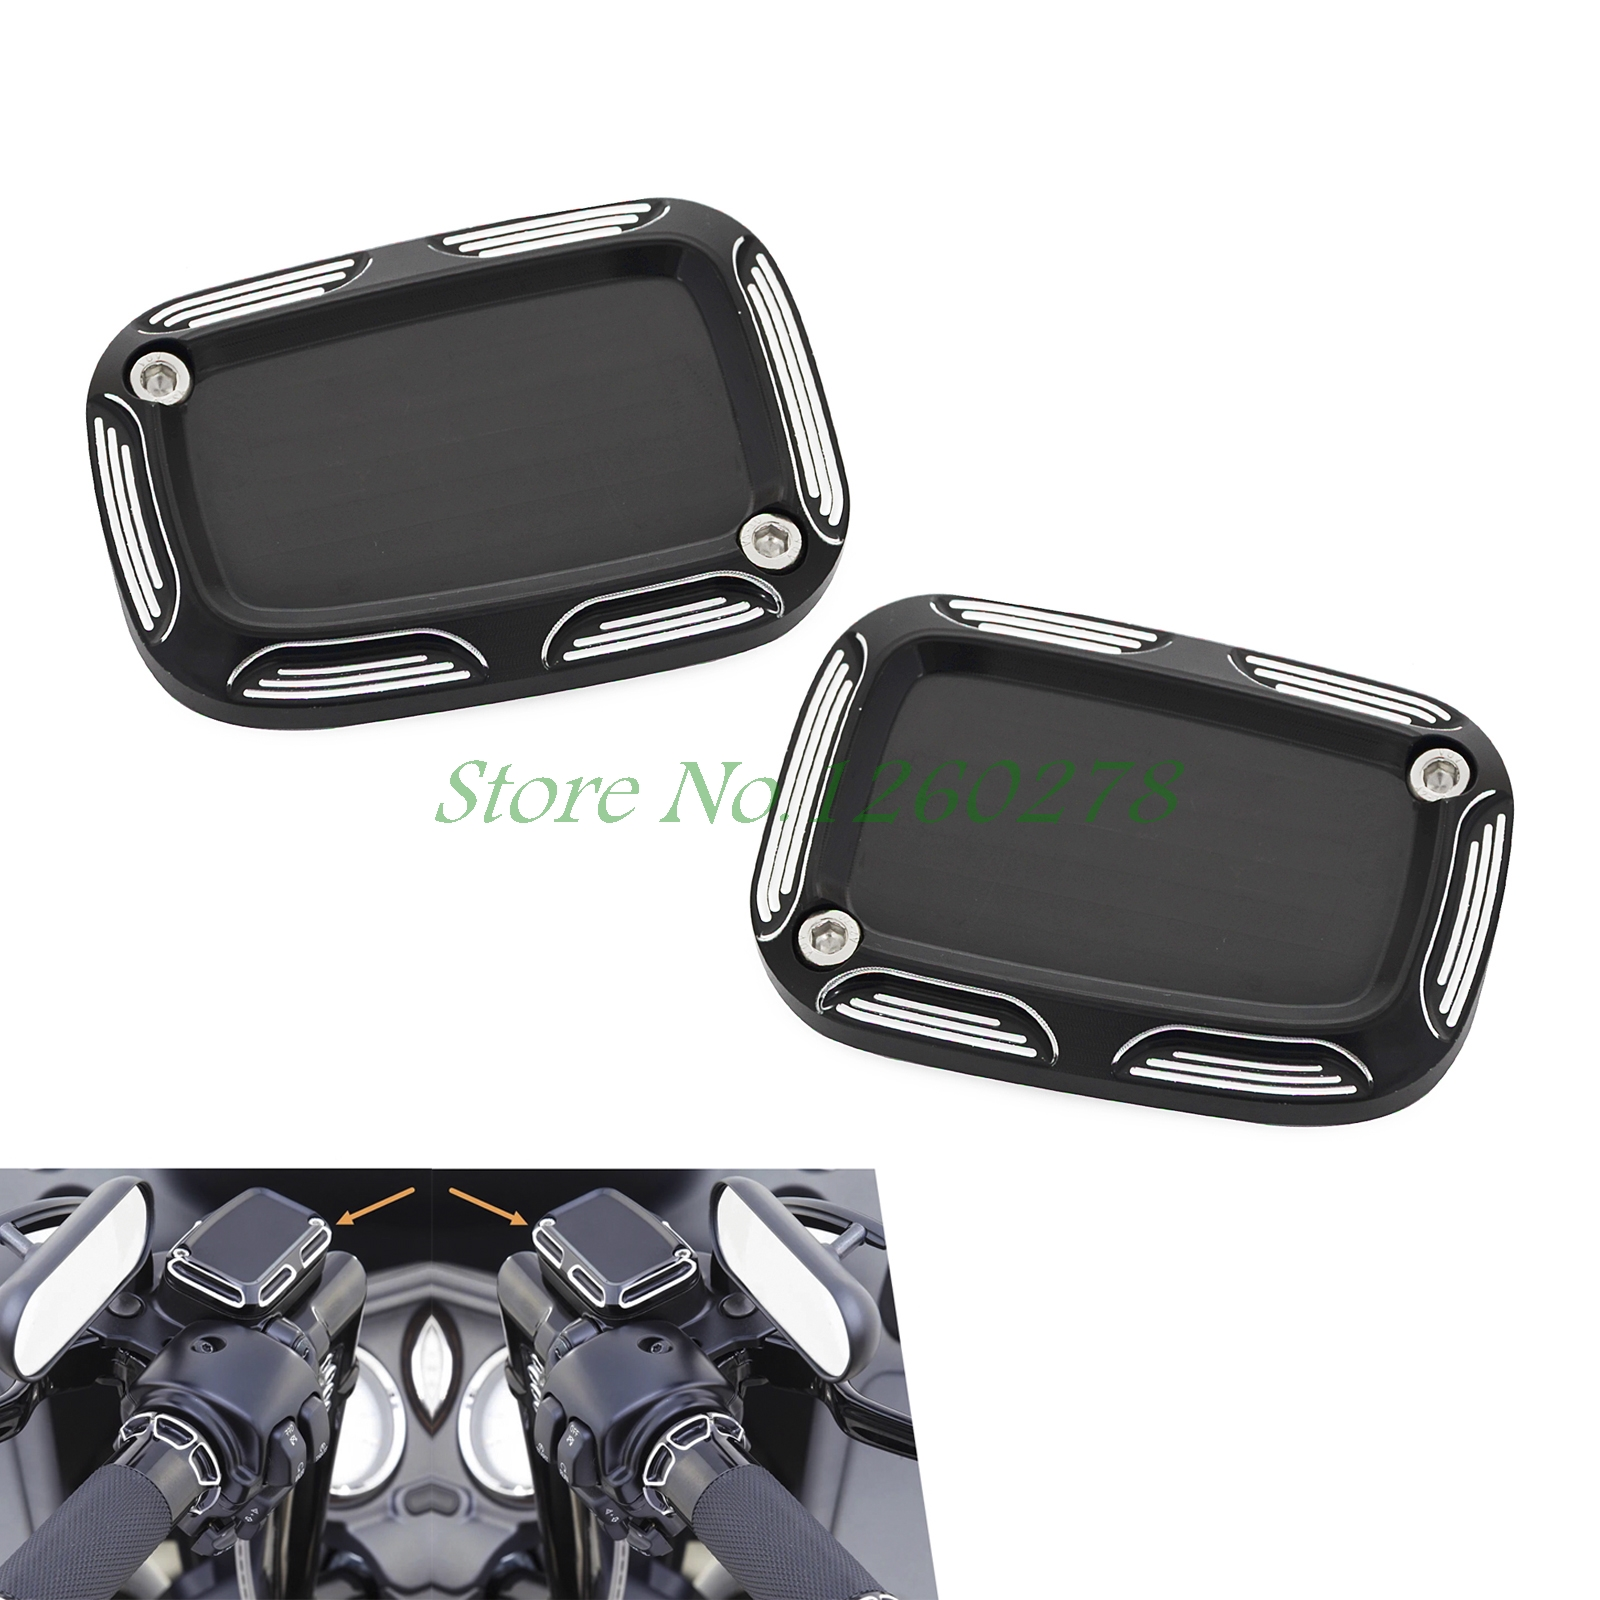 Edge Cut Front Brake Clutch Master Cylinder Cover For Harley Night Rod Special V Rod Muscle VRSCF VRSCDX 2010-2017<br>